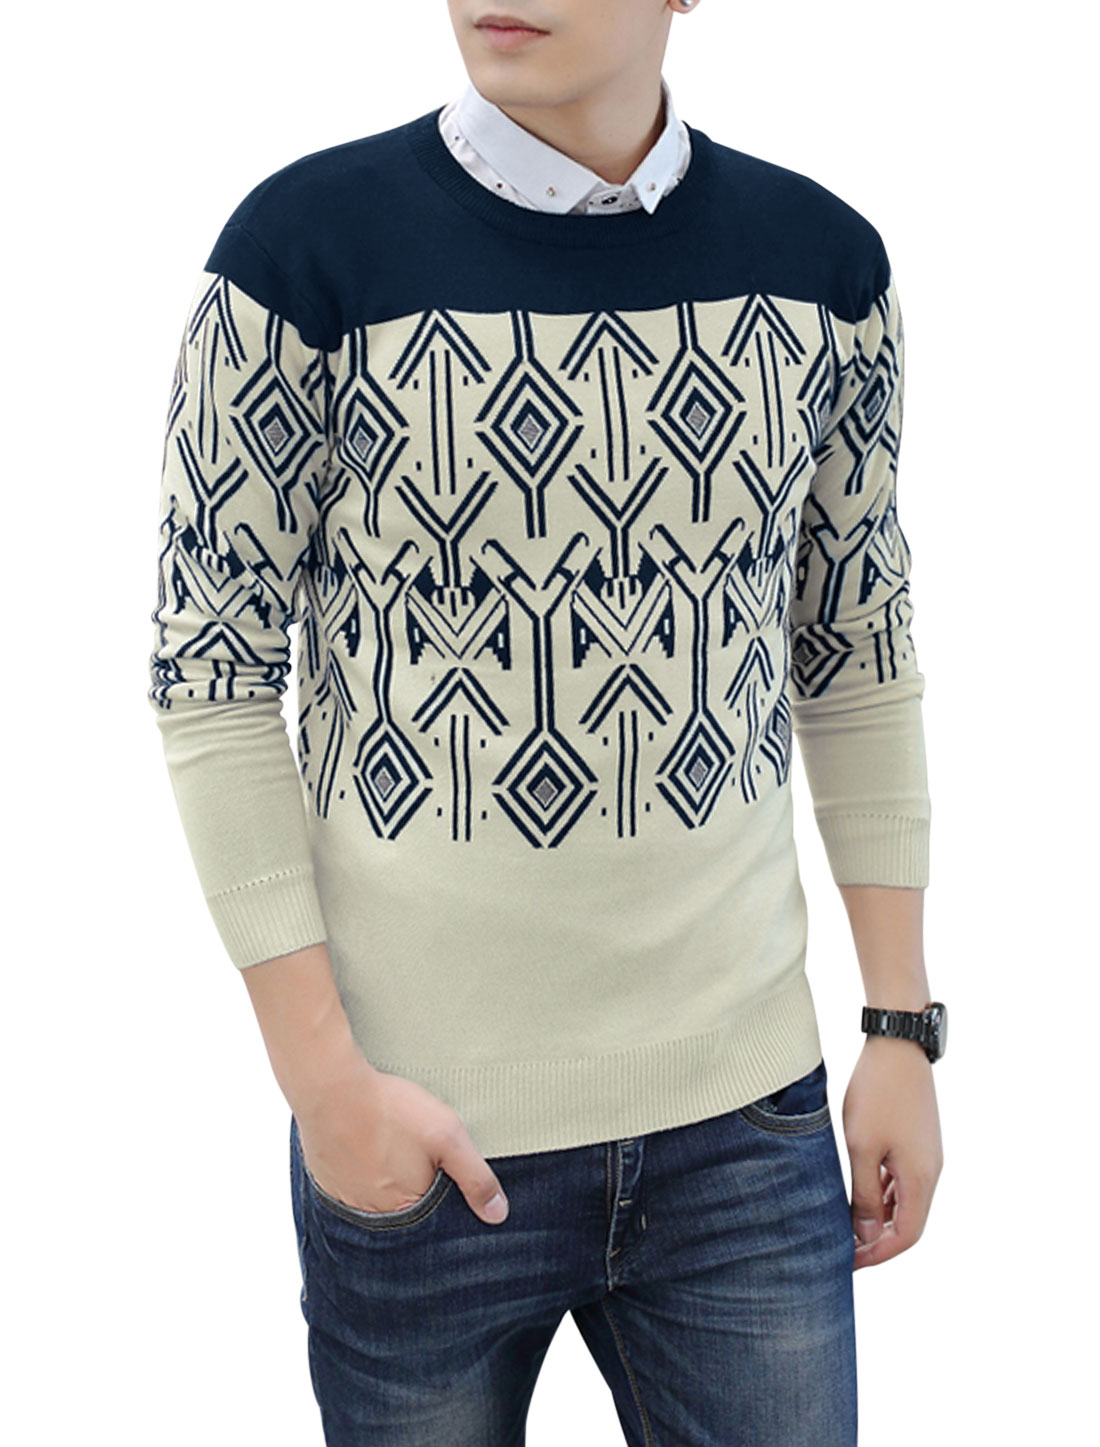 Men Round Neck Contrast Color Geometric Prints Knitted Top Navy Blue Beige M